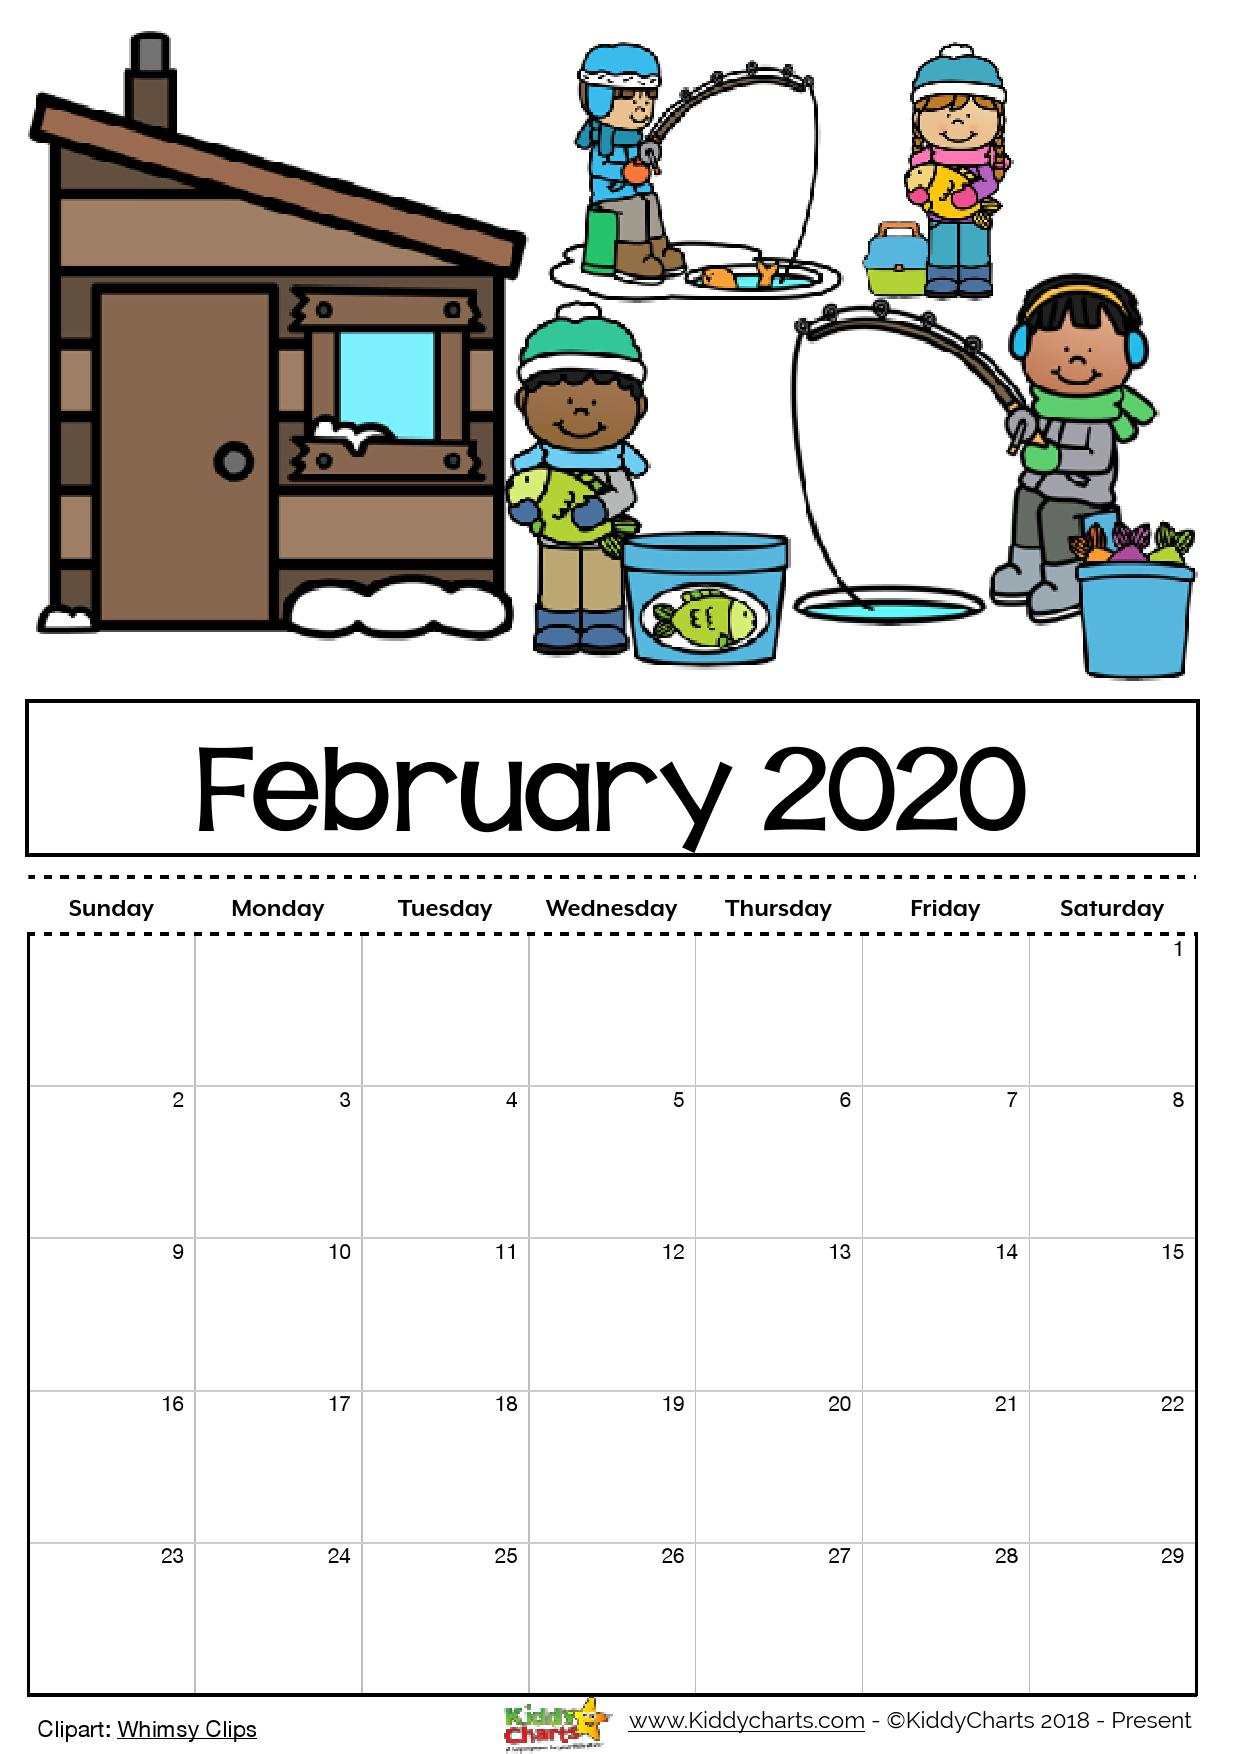 February Calendar 2020 Printable Cute Free Printable 2020 calendar for kids, including an editable version